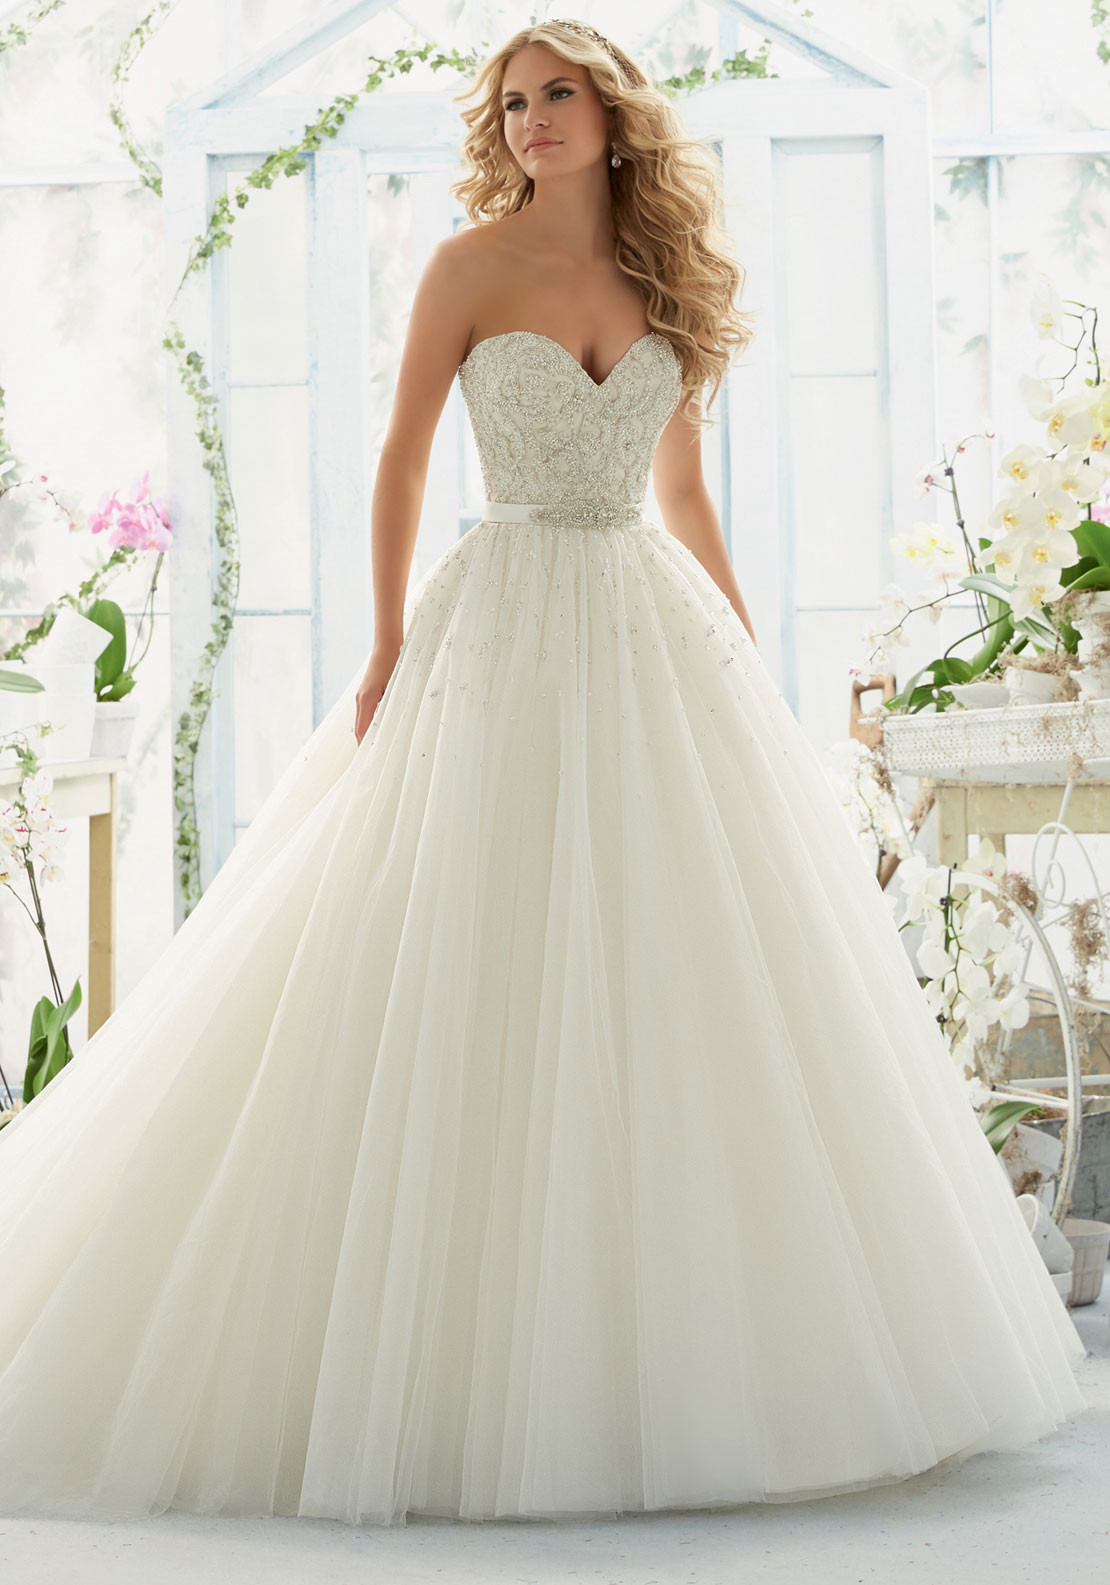 MORI LEE BRIDAL 14S IVO